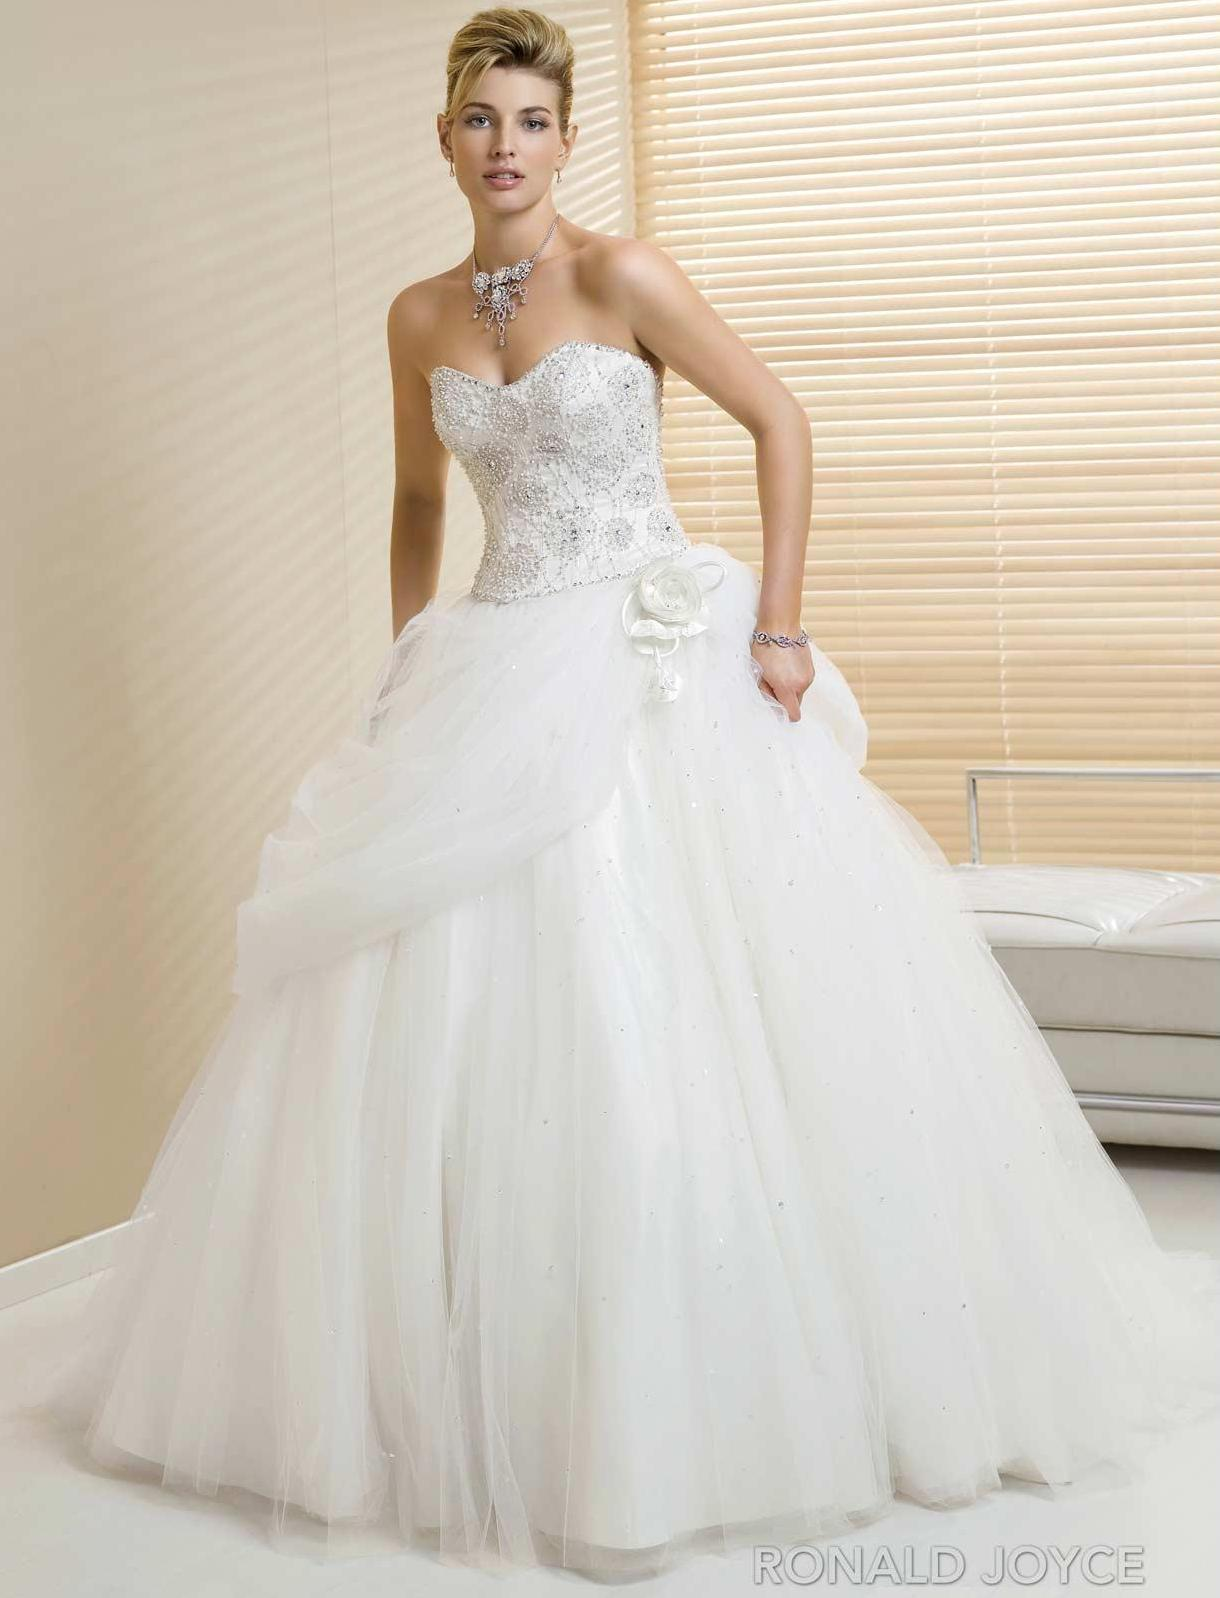 Ronald Joyce Bridal Dresses